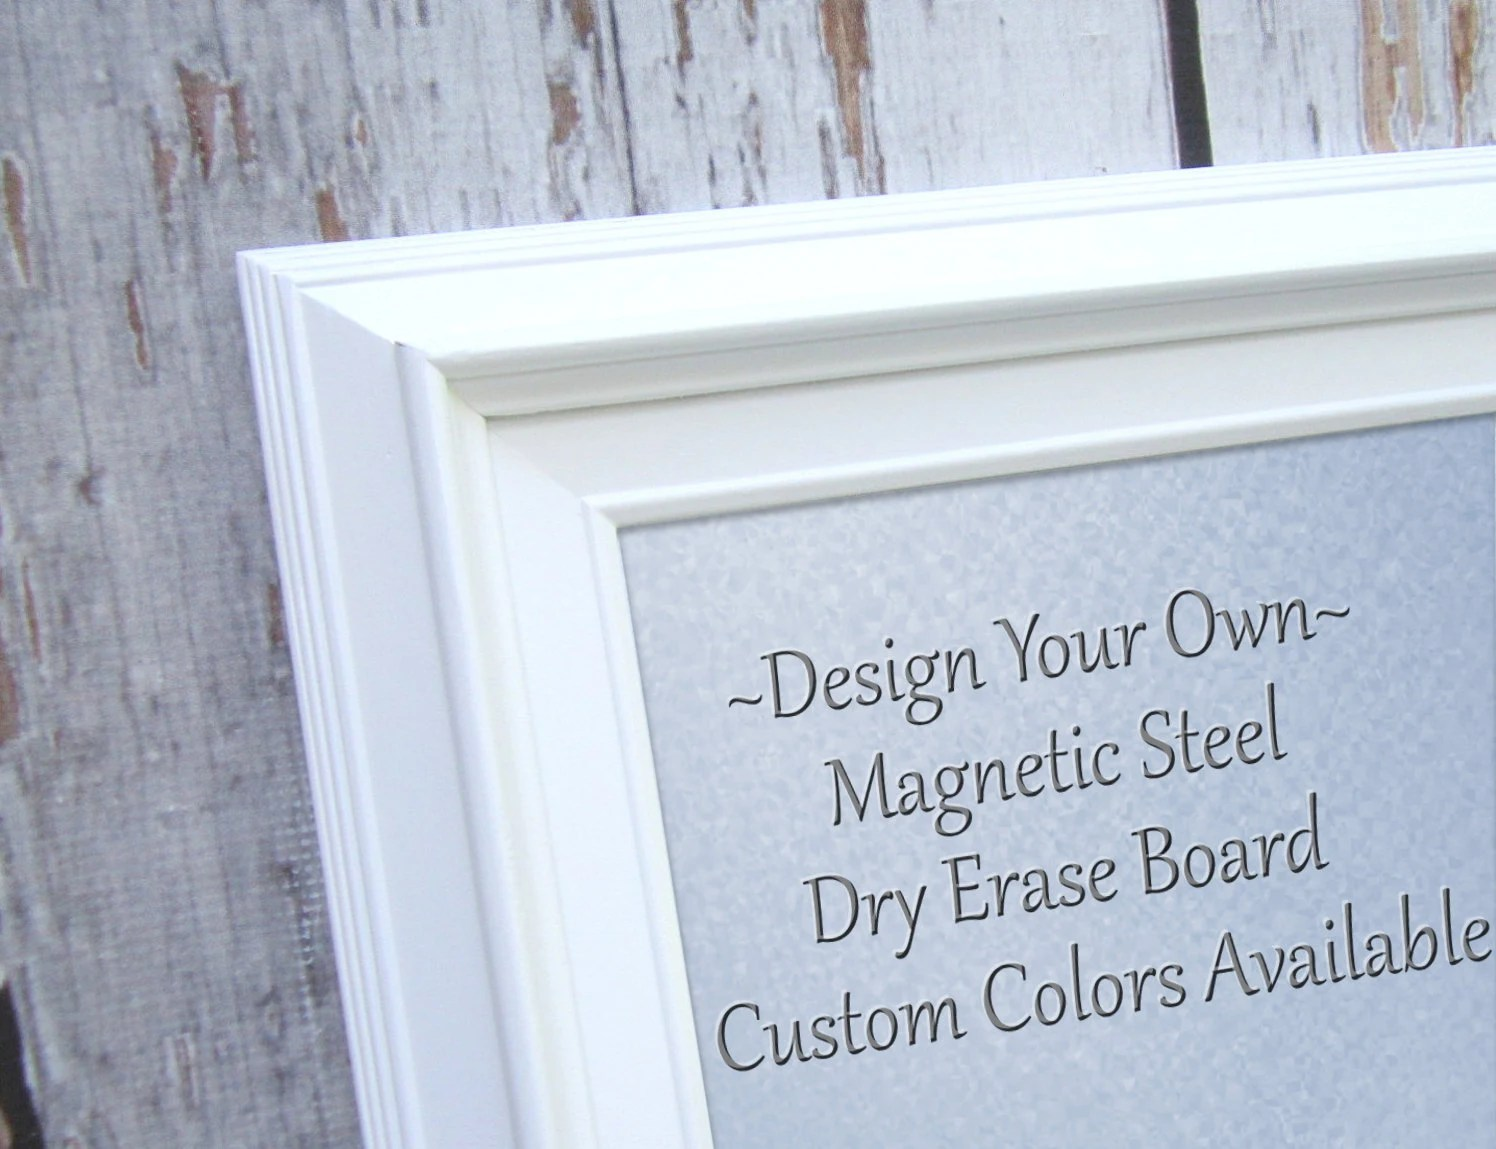 Best Magnet Boards For Sale White Modern Framed Magnetic Board Dry This Month